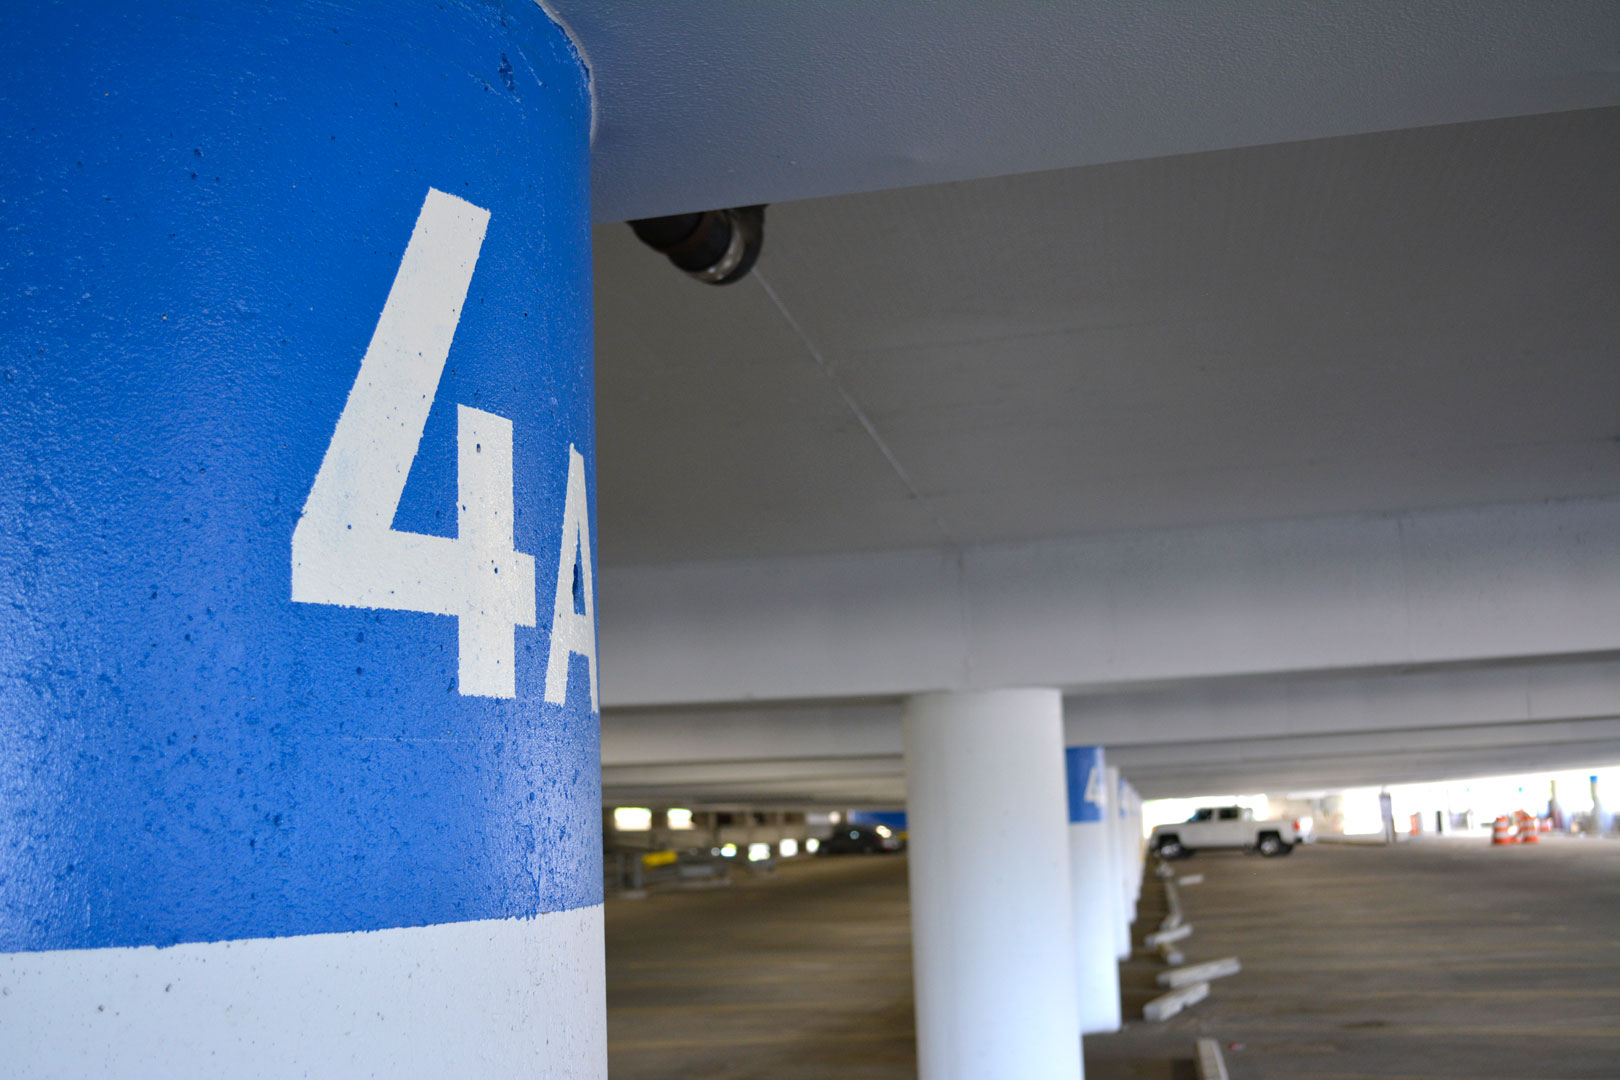 Painted column IDs in the 22nd street BJCC parking deck